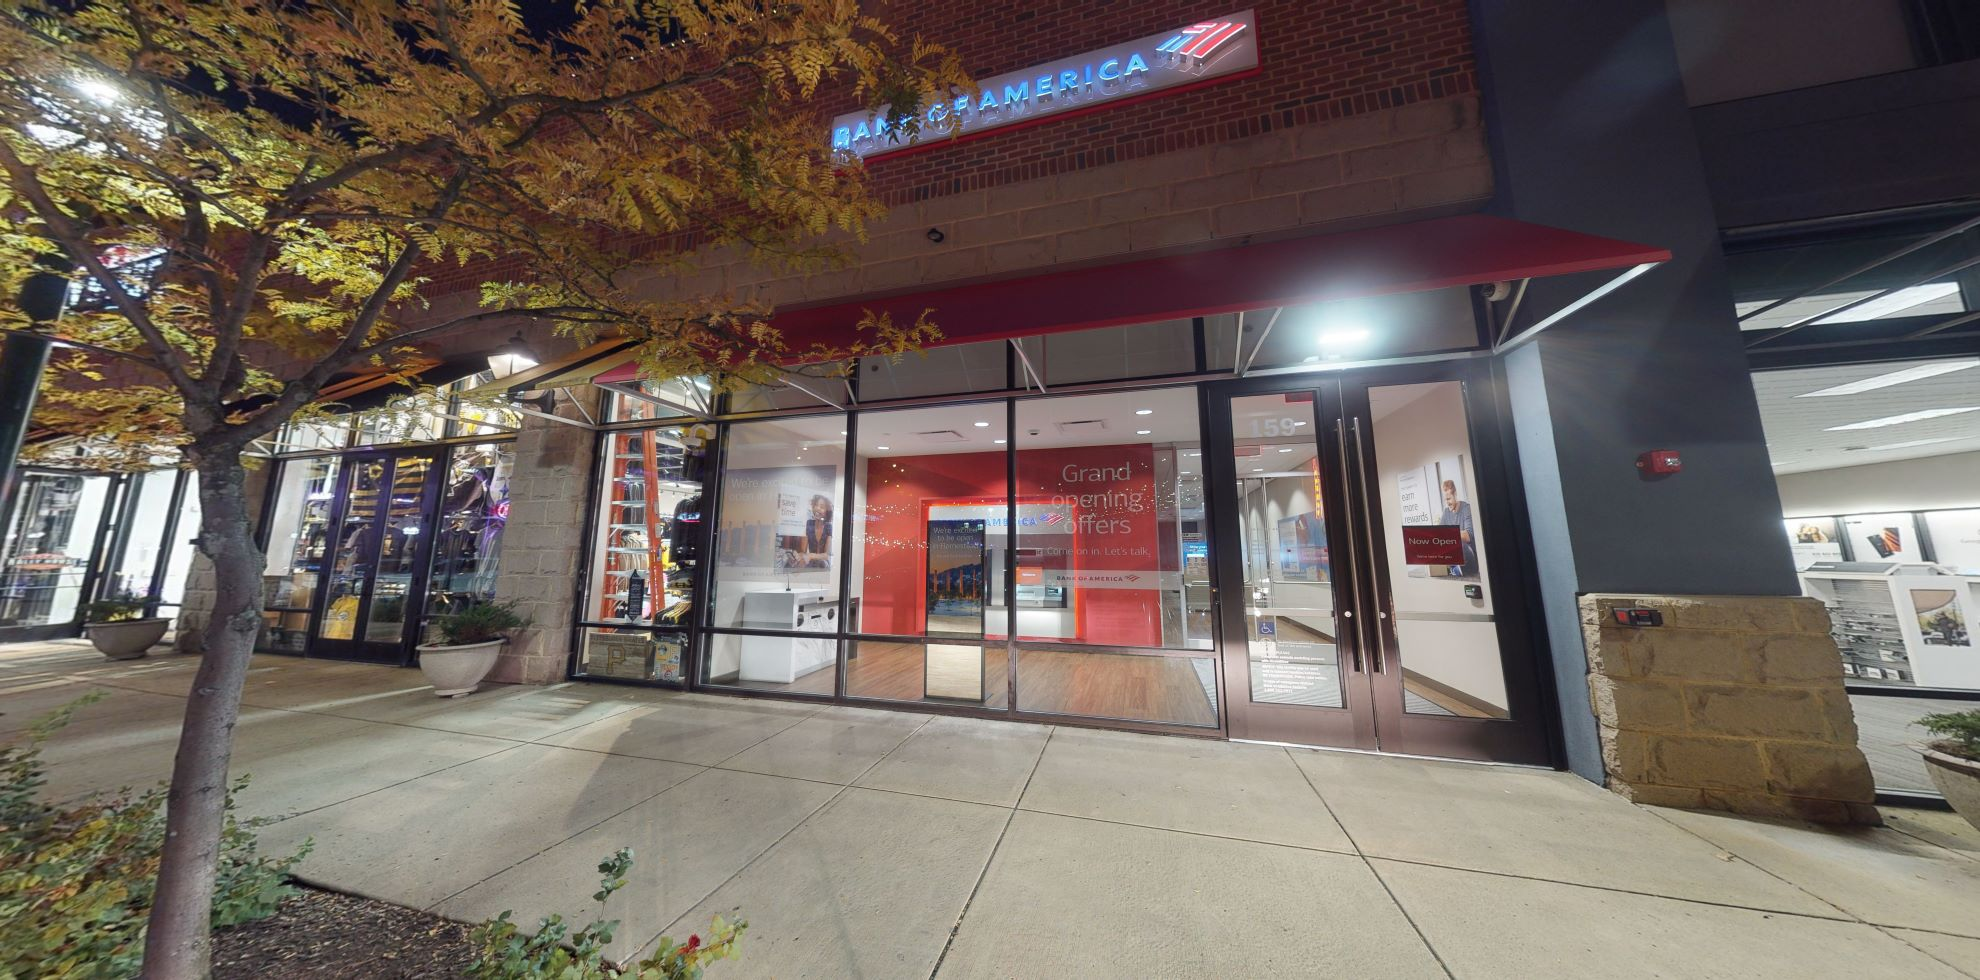 Bank of America financial center with walk-up ATM | 159 E Bridge St, Homestead, PA 15120